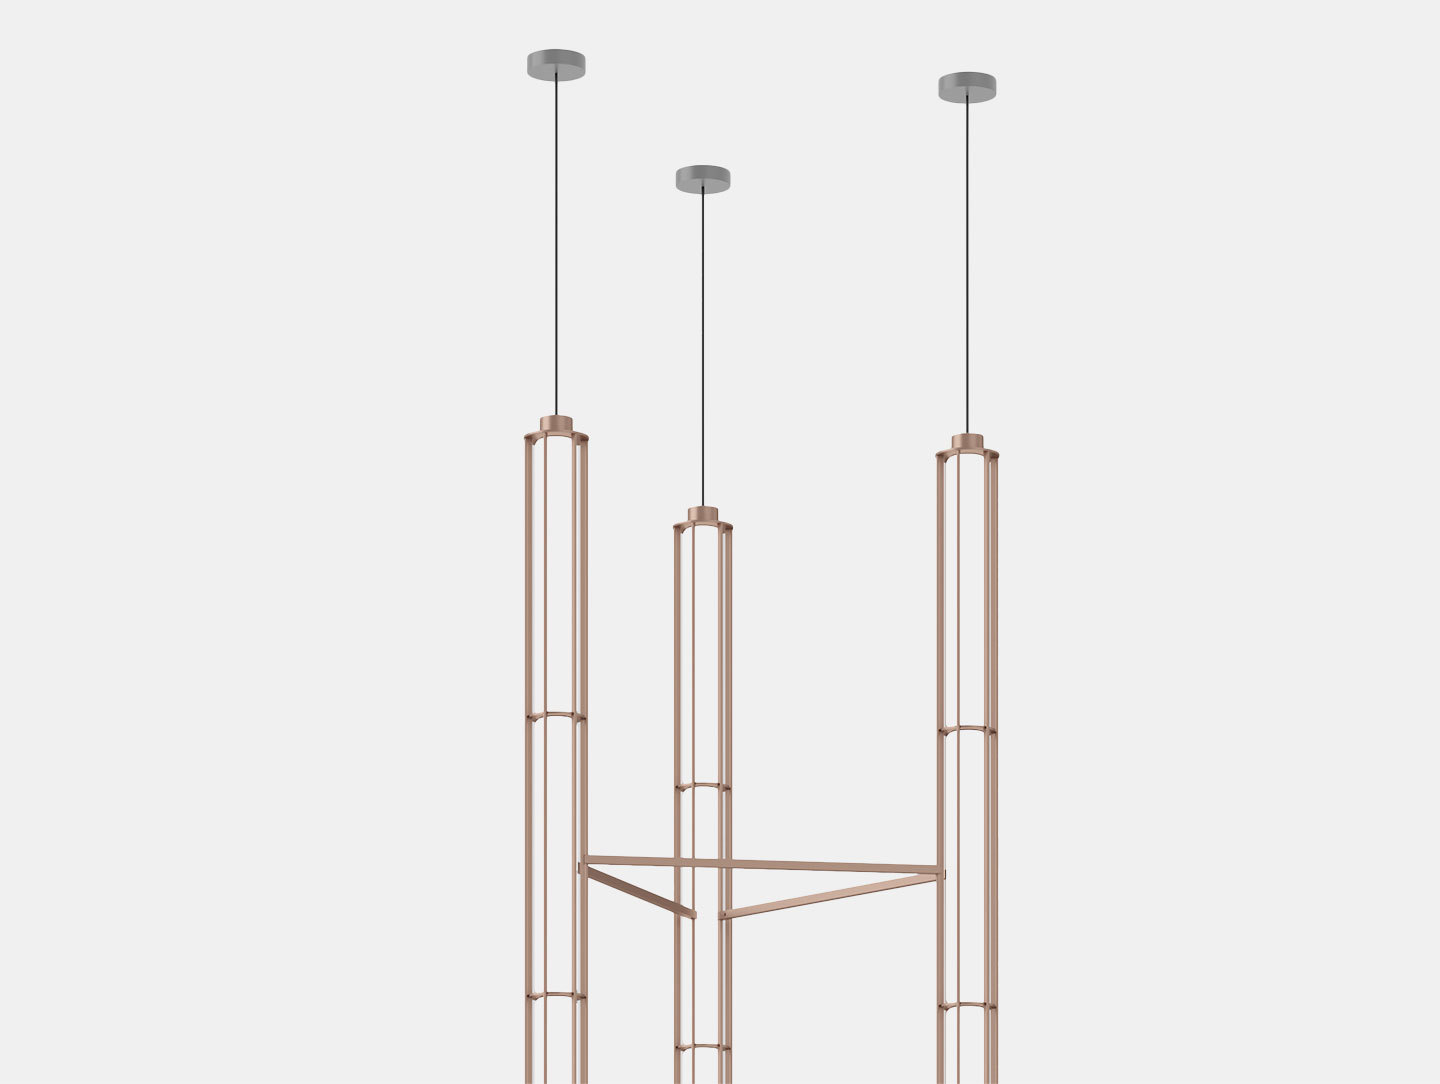 Flos Verticale Suspension Light Triple Det Ronan Erwan Bouroullec